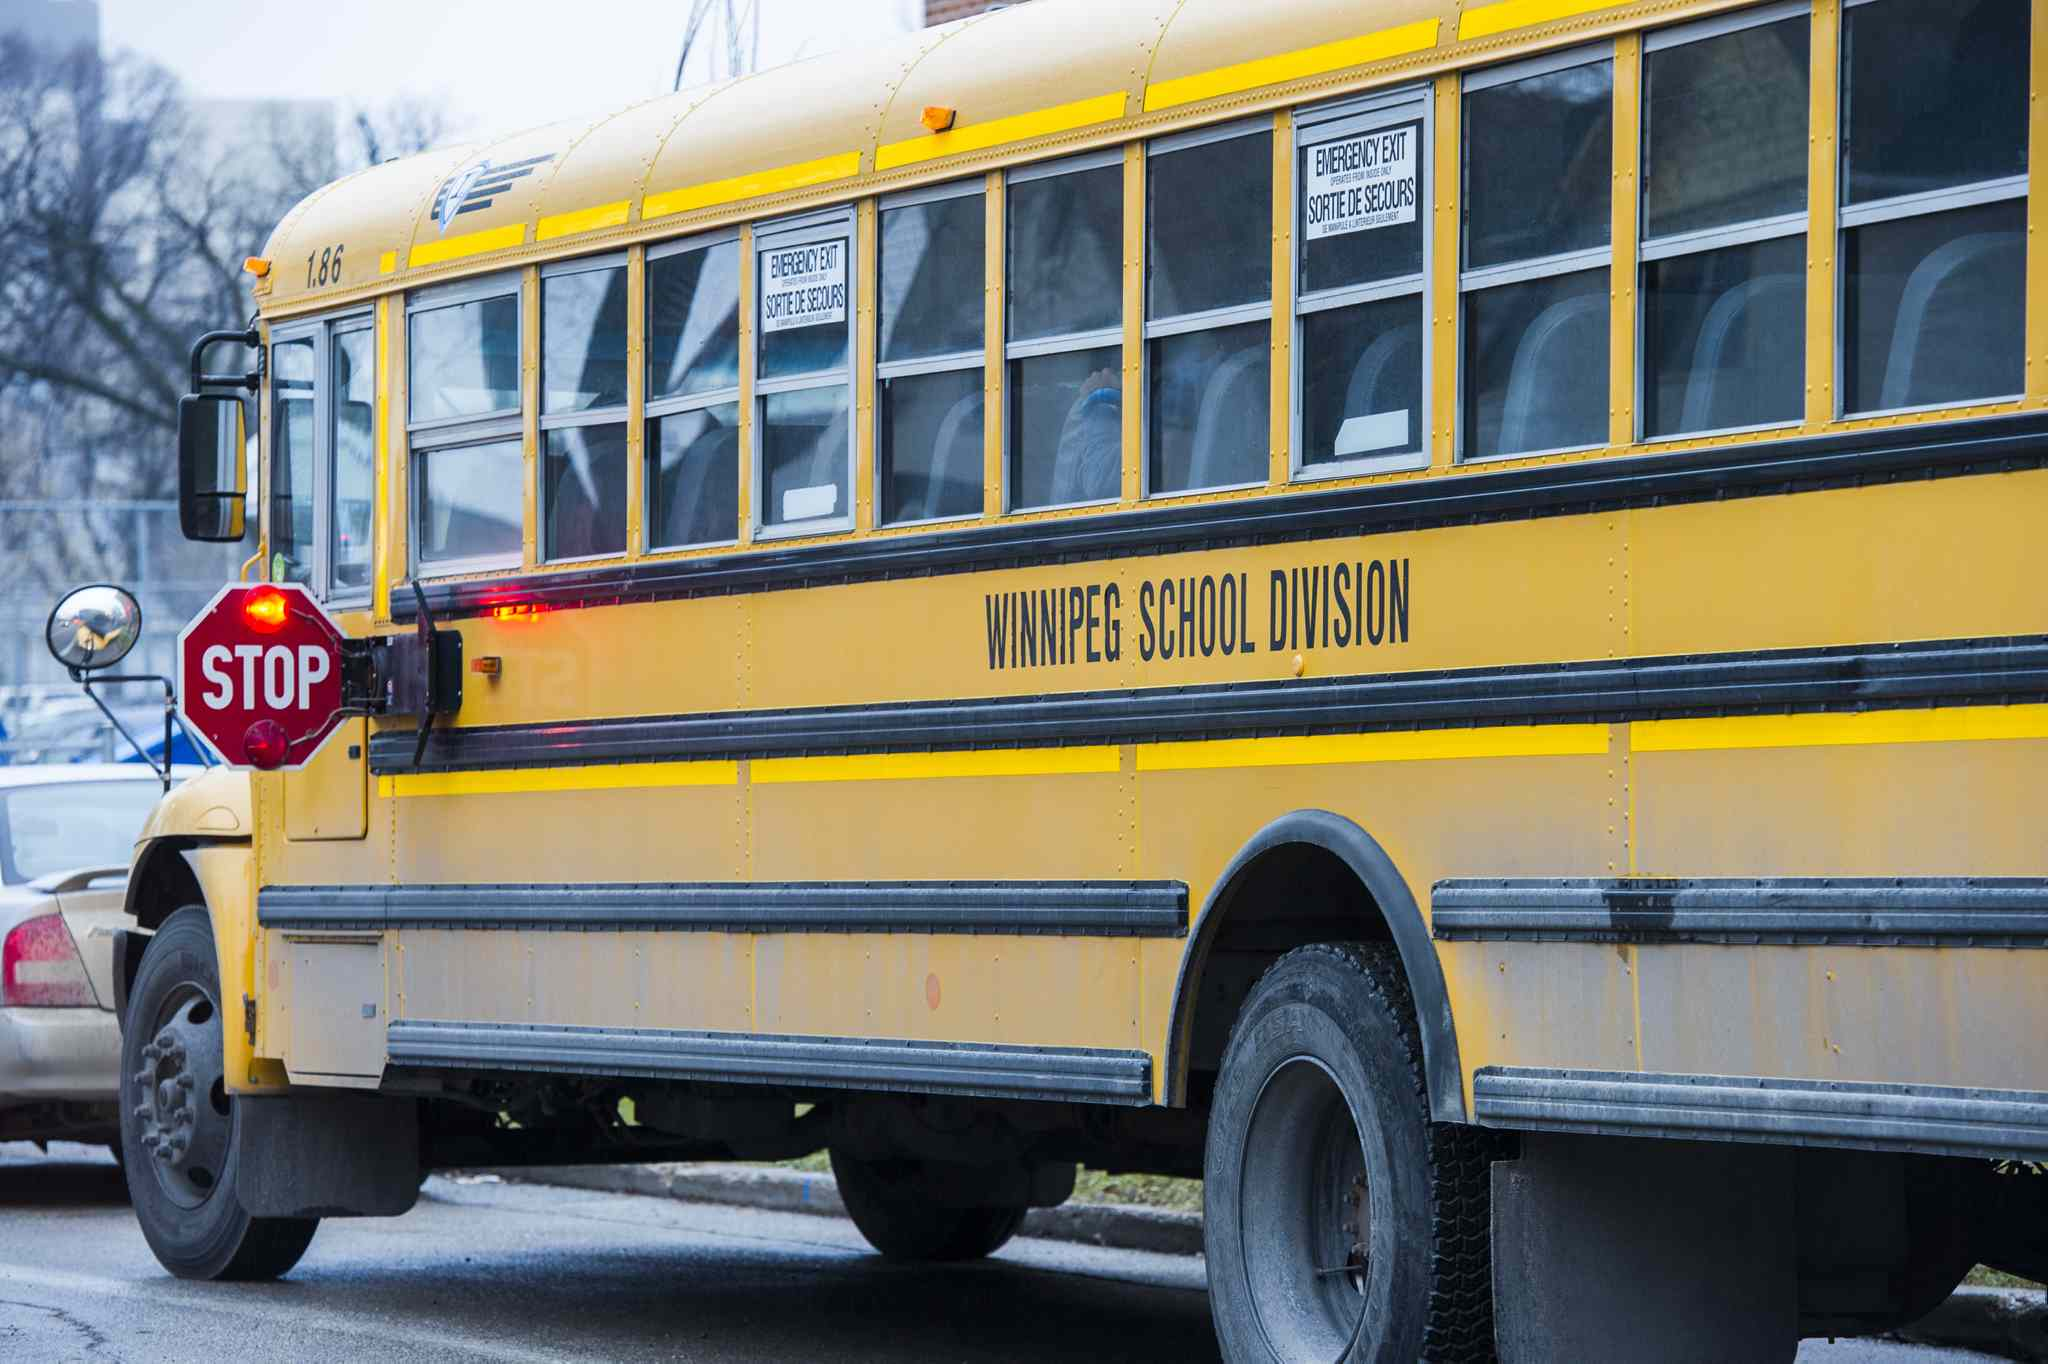 School bus drivers in the Winnipeg School Division are getting an overall 22.7 per cent raise.